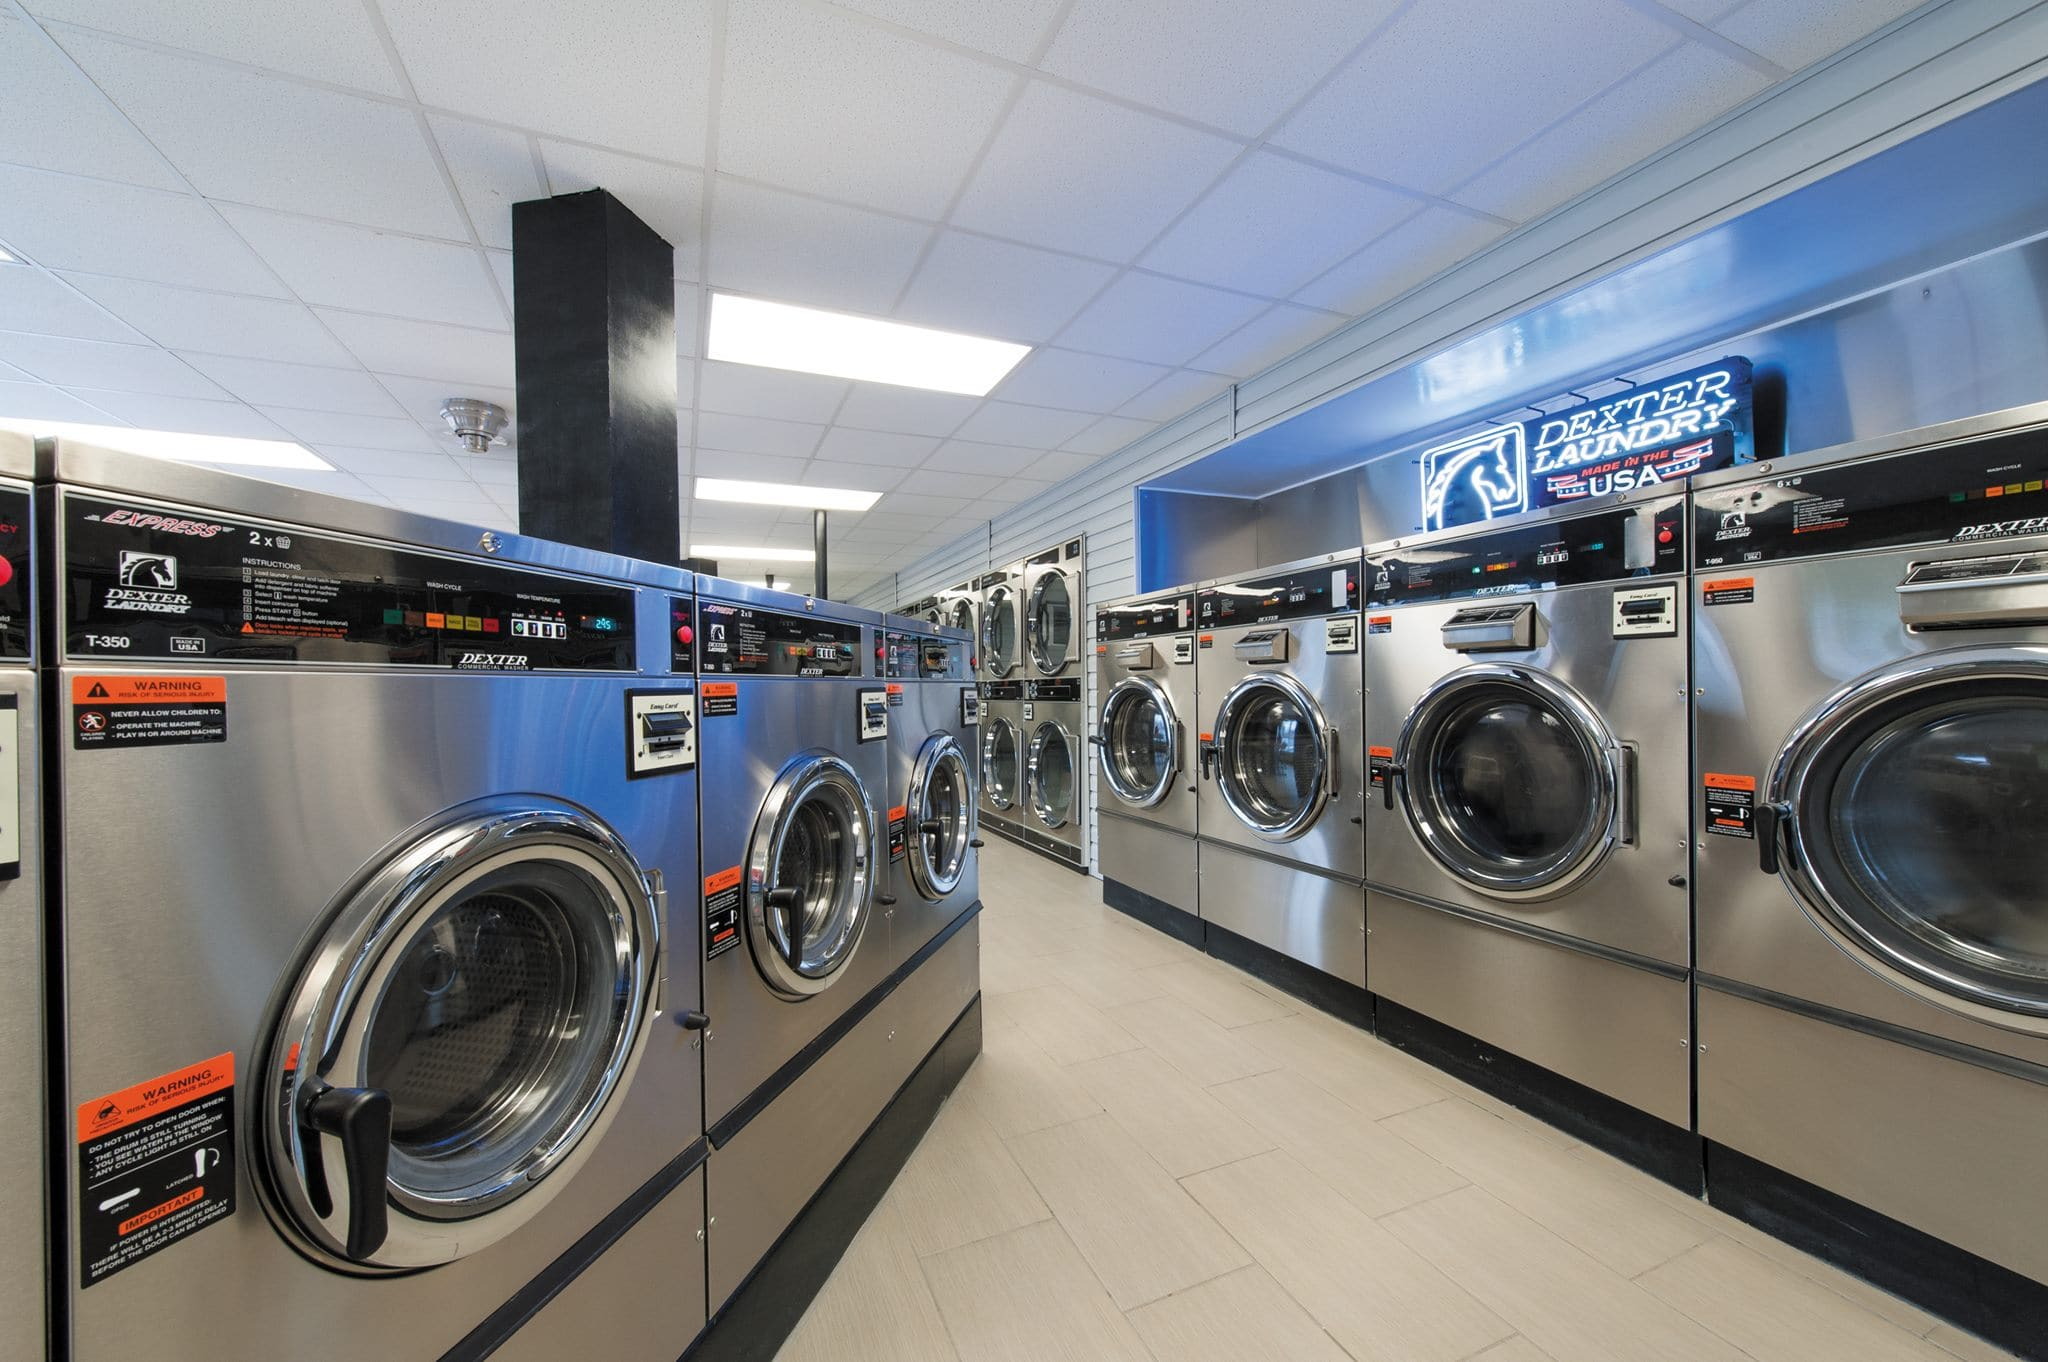 Dexter Laundry differentiated its products from the competition by connecting their machines to the IoT.